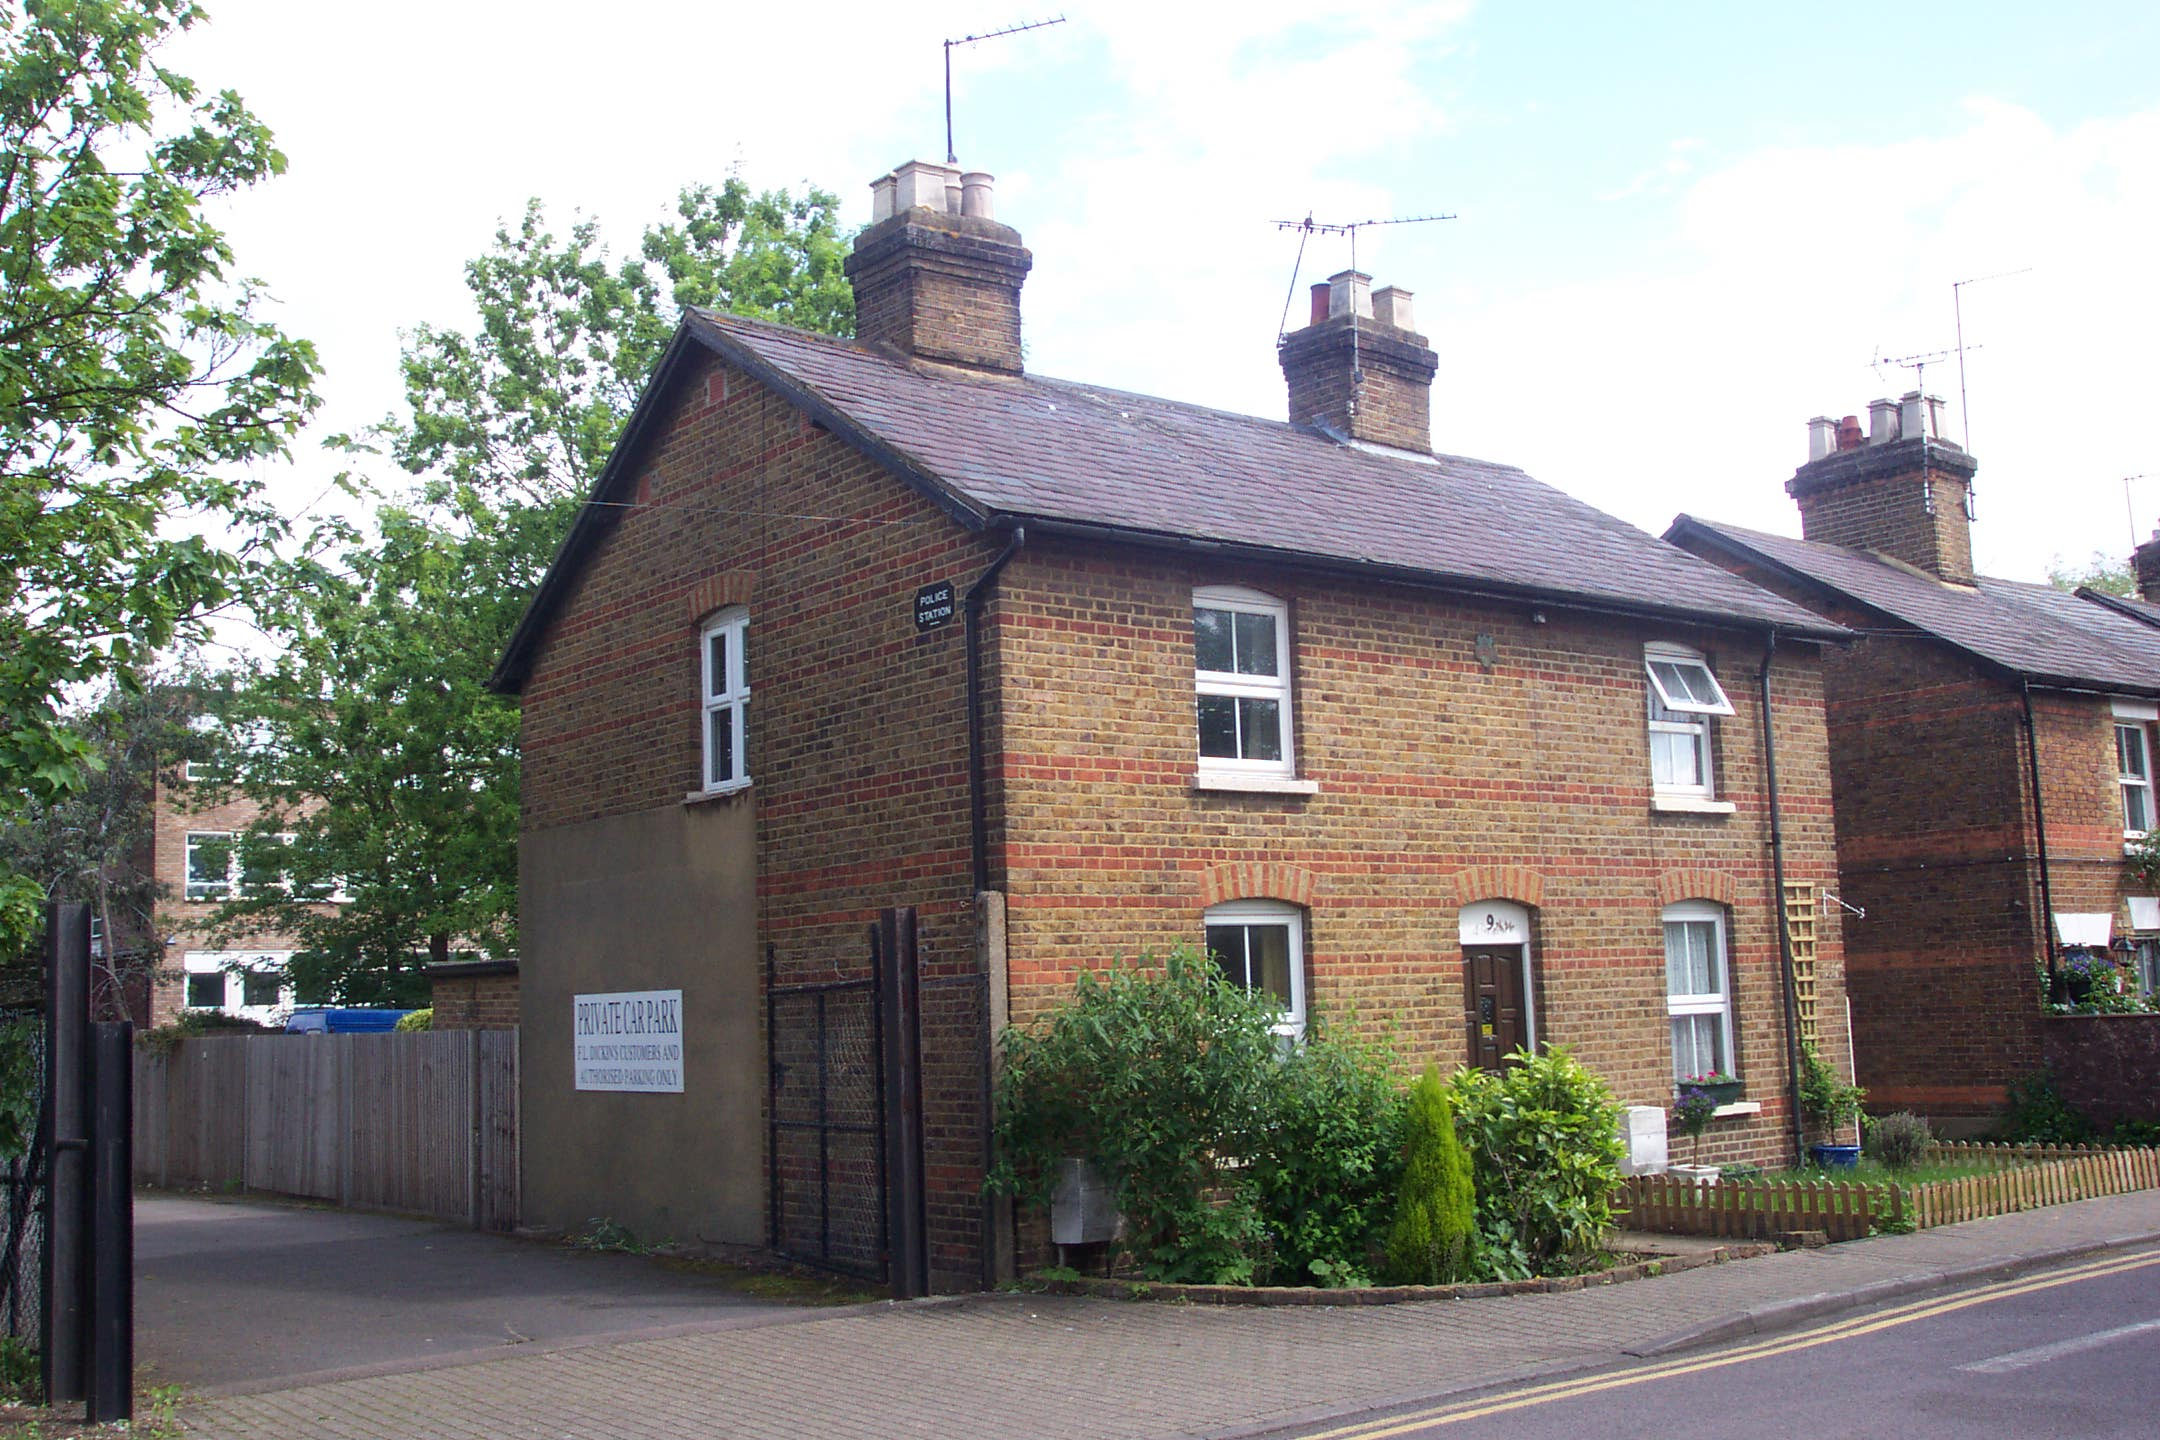 'The Old Police Station' at Rickmansworth: Exterior. Showing the 'shadow' on the side of the building where the external cells were located and attached, as well as the old 'Police Station' sign above and to the right of the cells.